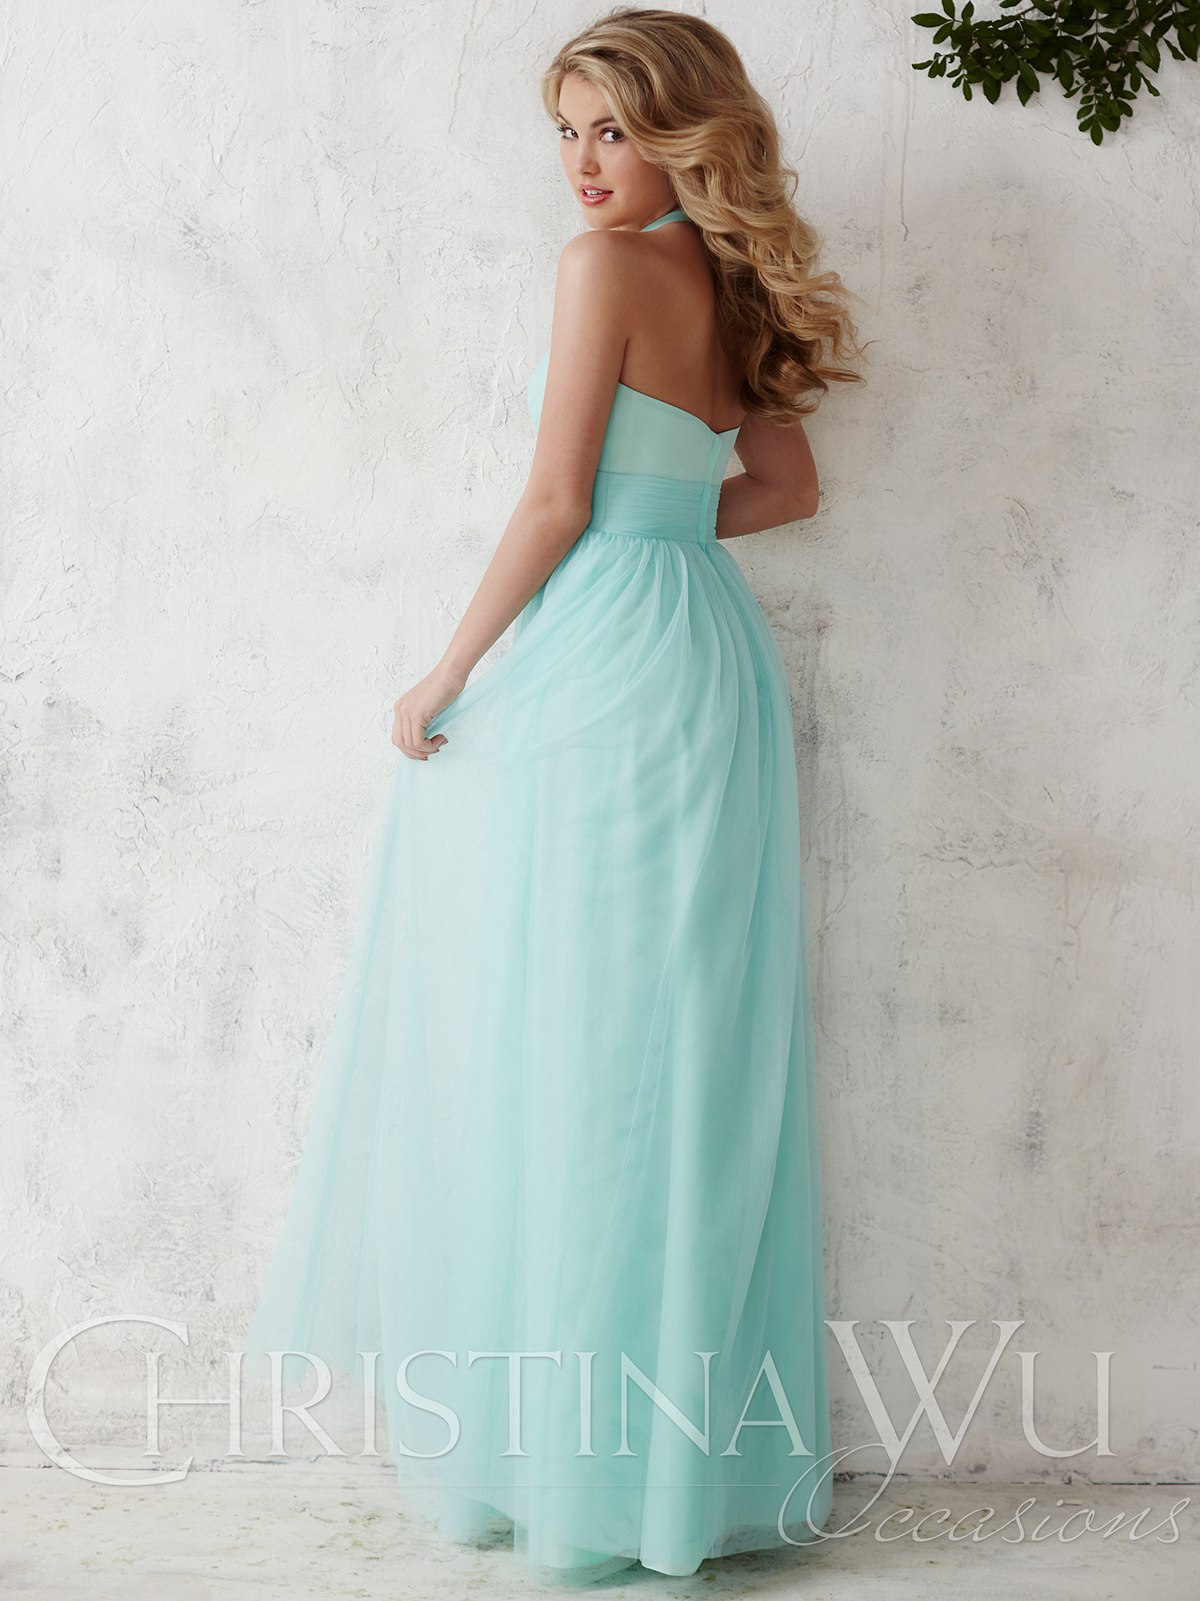 Awesome Occasions Bridesmaid Dresses Images - All Wedding Dresses ...